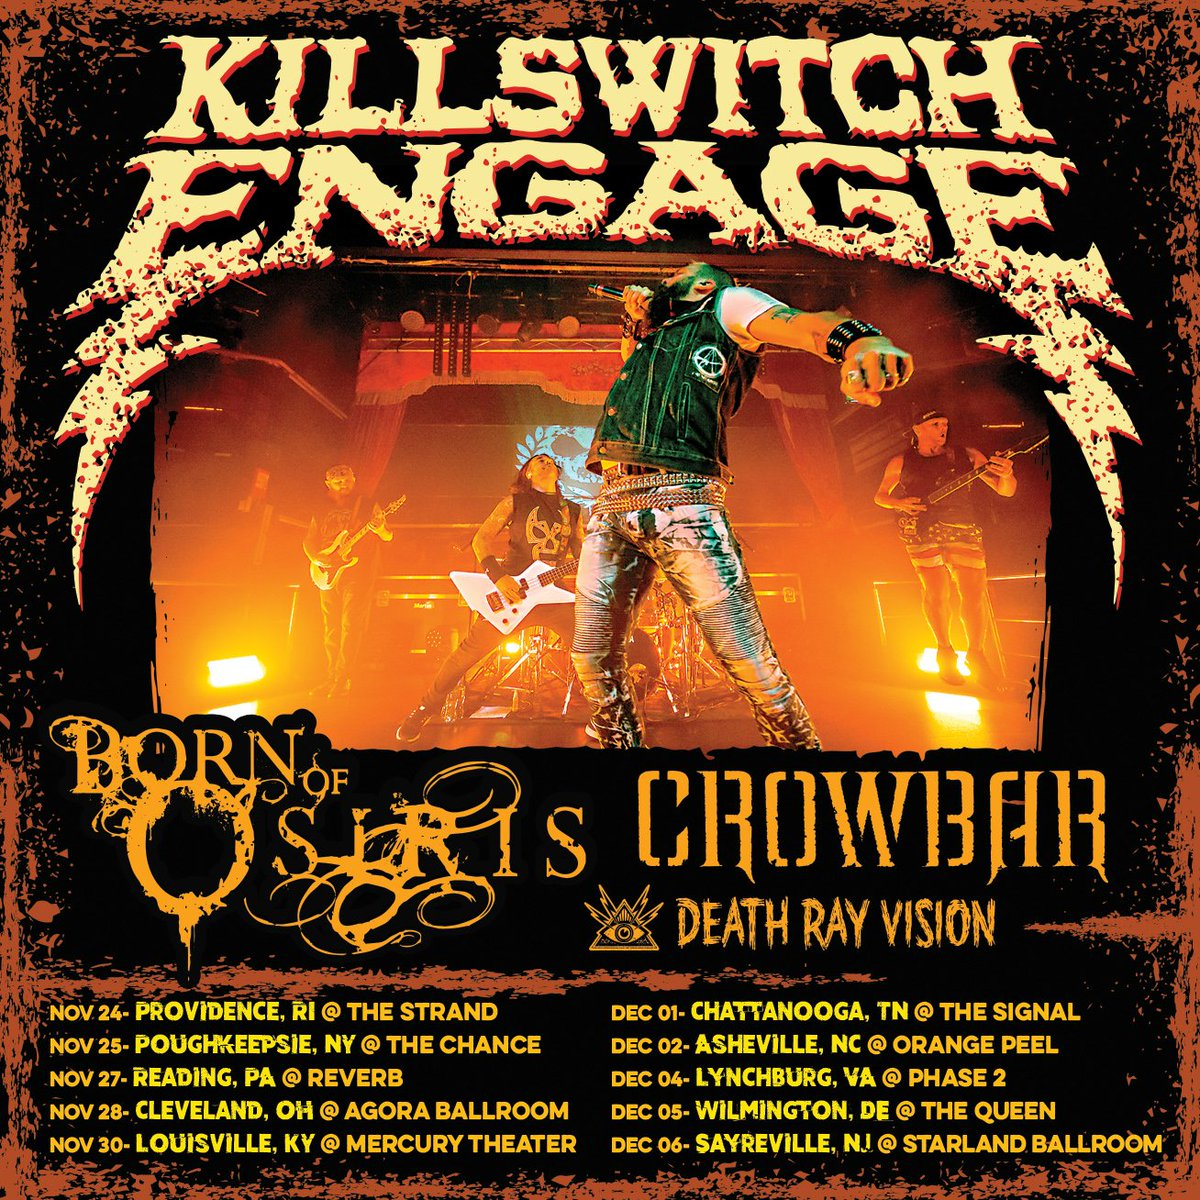 Killswitch Engage Kseofficial Twitter